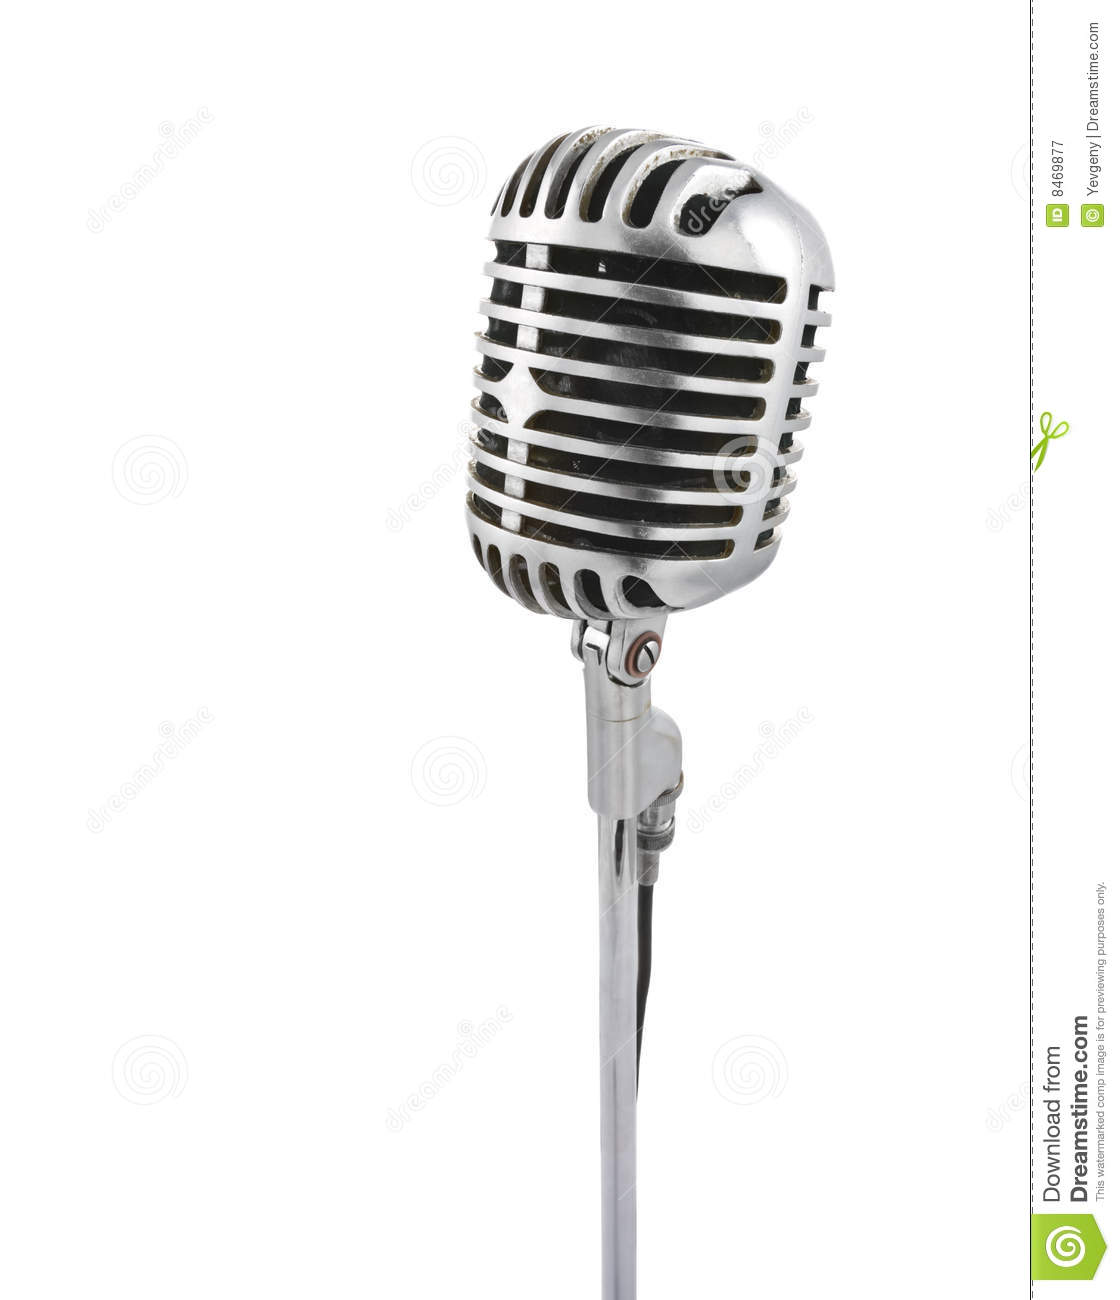 Vintage microphone royalty free stock photography image 8469877